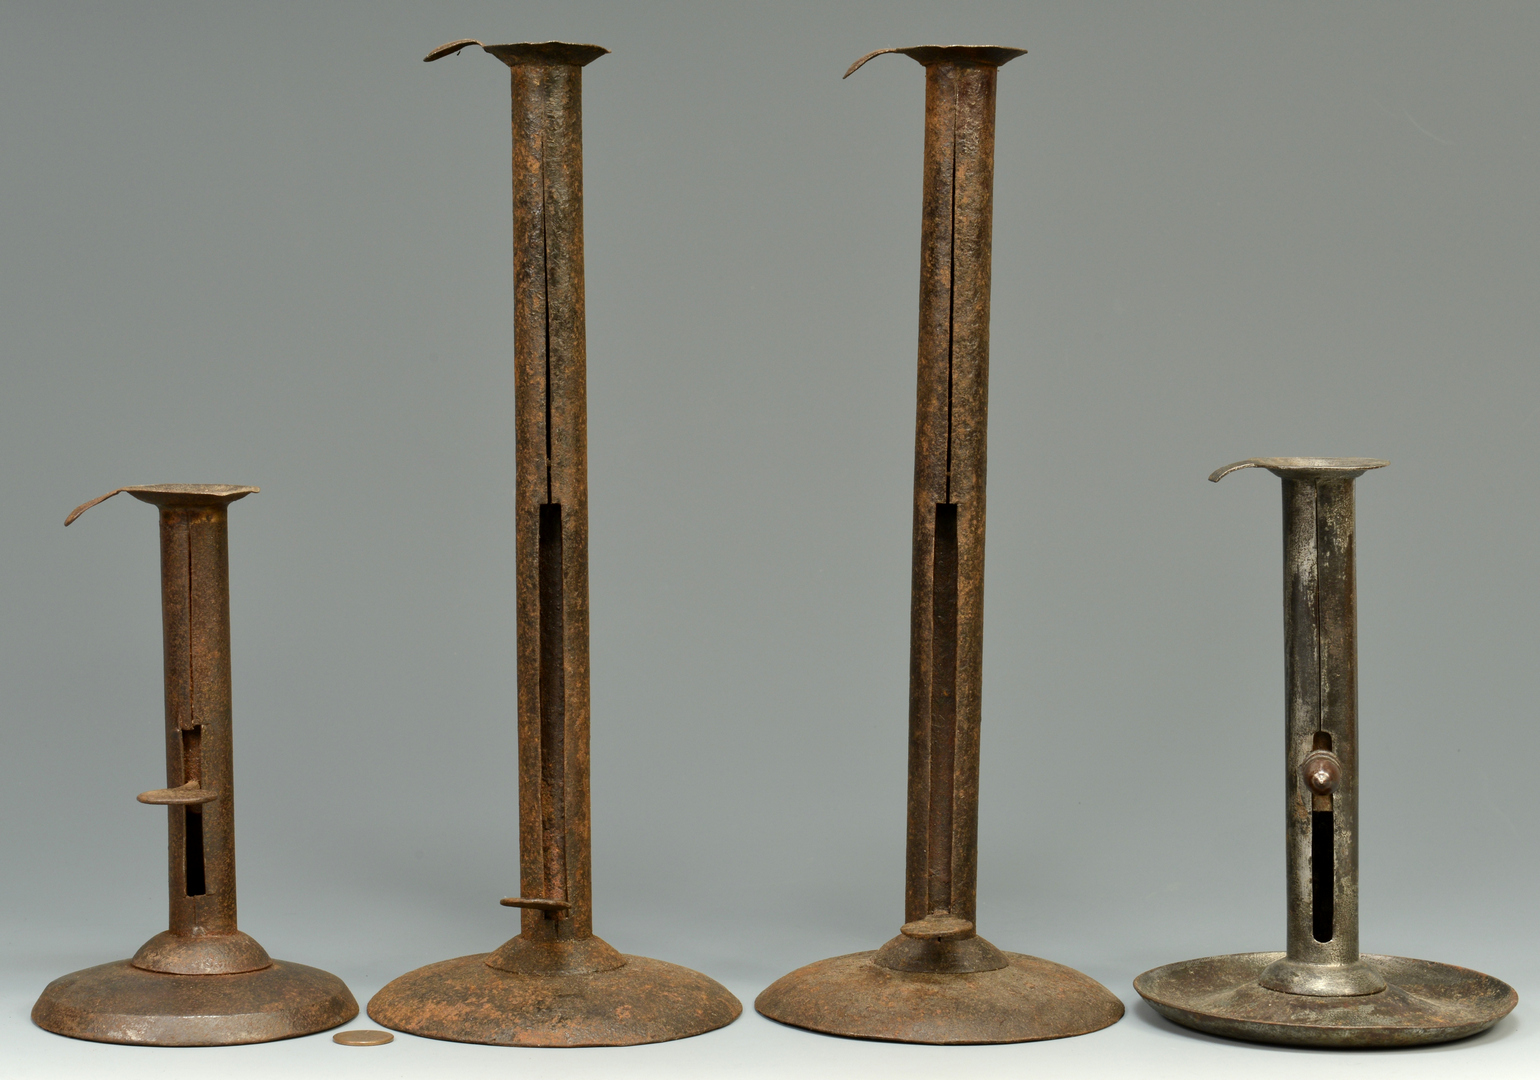 Lot 3088117: Group of 4 Metal Candlesticks